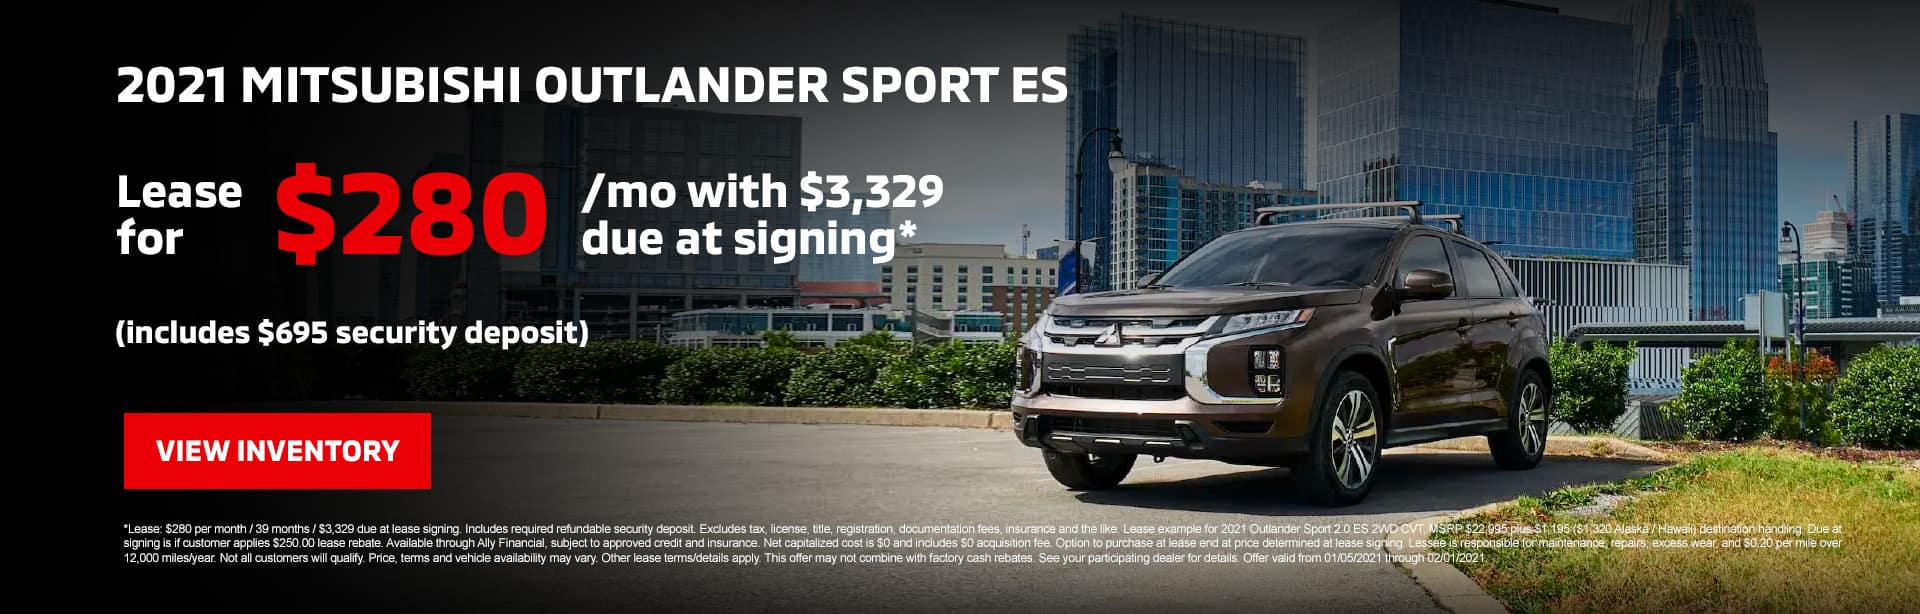 2021 Mitsubishi Outlander Sport ES: Lease for $280/mo with $3,329 due at signing* (includes $695 security deposit)